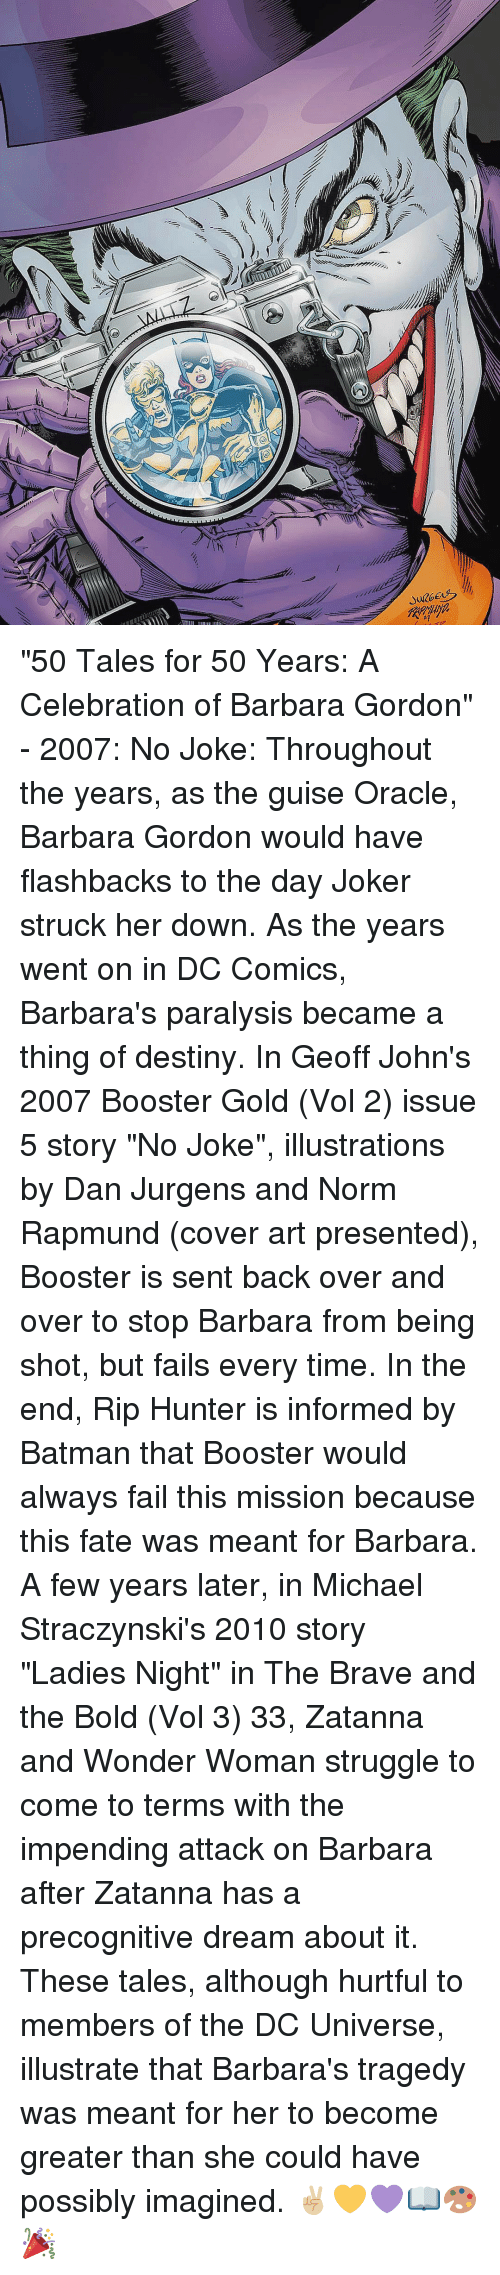 "Memes, Oracle, and Wonder Woman: し  ーズ ""50 Tales for 50 Years: A Celebration of Barbara Gordon"" - 2007: No Joke: Throughout the years, as the guise Oracle, Barbara Gordon would have flashbacks to the day Joker struck her down. As the years went on in DC Comics, Barbara's paralysis became a thing of destiny. In Geoff John's 2007 Booster Gold (Vol 2) issue 5 story ""No Joke"", illustrations by Dan Jurgens and Norm Rapmund (cover art presented), Booster is sent back over and over to stop Barbara from being shot, but fails every time. In the end, Rip Hunter is informed by Batman that Booster would always fail this mission because this fate was meant for Barbara. A few years later, in Michael Straczynski's 2010 story ""Ladies Night"" in The Brave and the Bold (Vol 3) 33, Zatanna and Wonder Woman struggle to come to terms with the impending attack on Barbara after Zatanna has a precognitive dream about it. These tales, although hurtful to members of the DC Universe, illustrate that Barbara's tragedy was meant for her to become greater than she could have possibly imagined. ✌🏼💛💜📖🎨🎉"